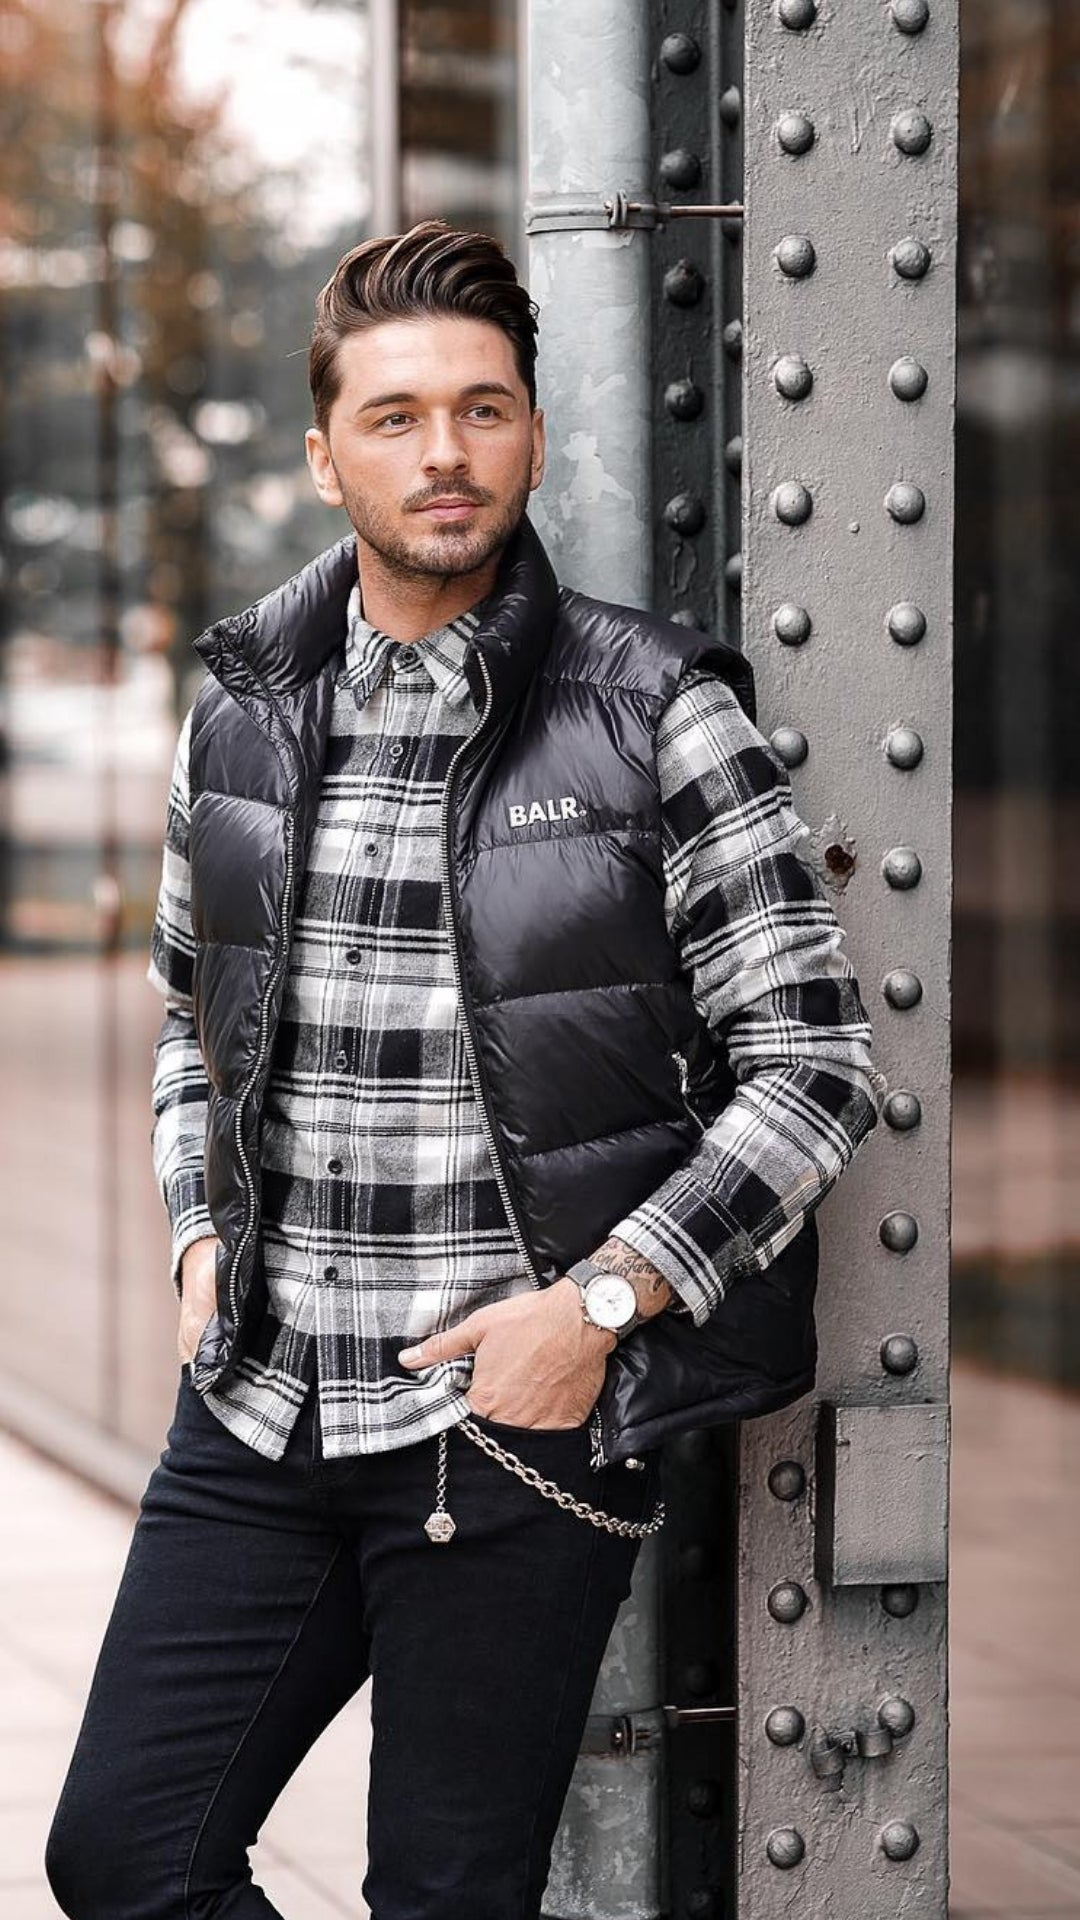 Looking for cool fall street style ideas? These 5 amazing fall street style looks will make you look sharp. #fallstyle #fallfashion #mens #fashion #street #style #fashiontips